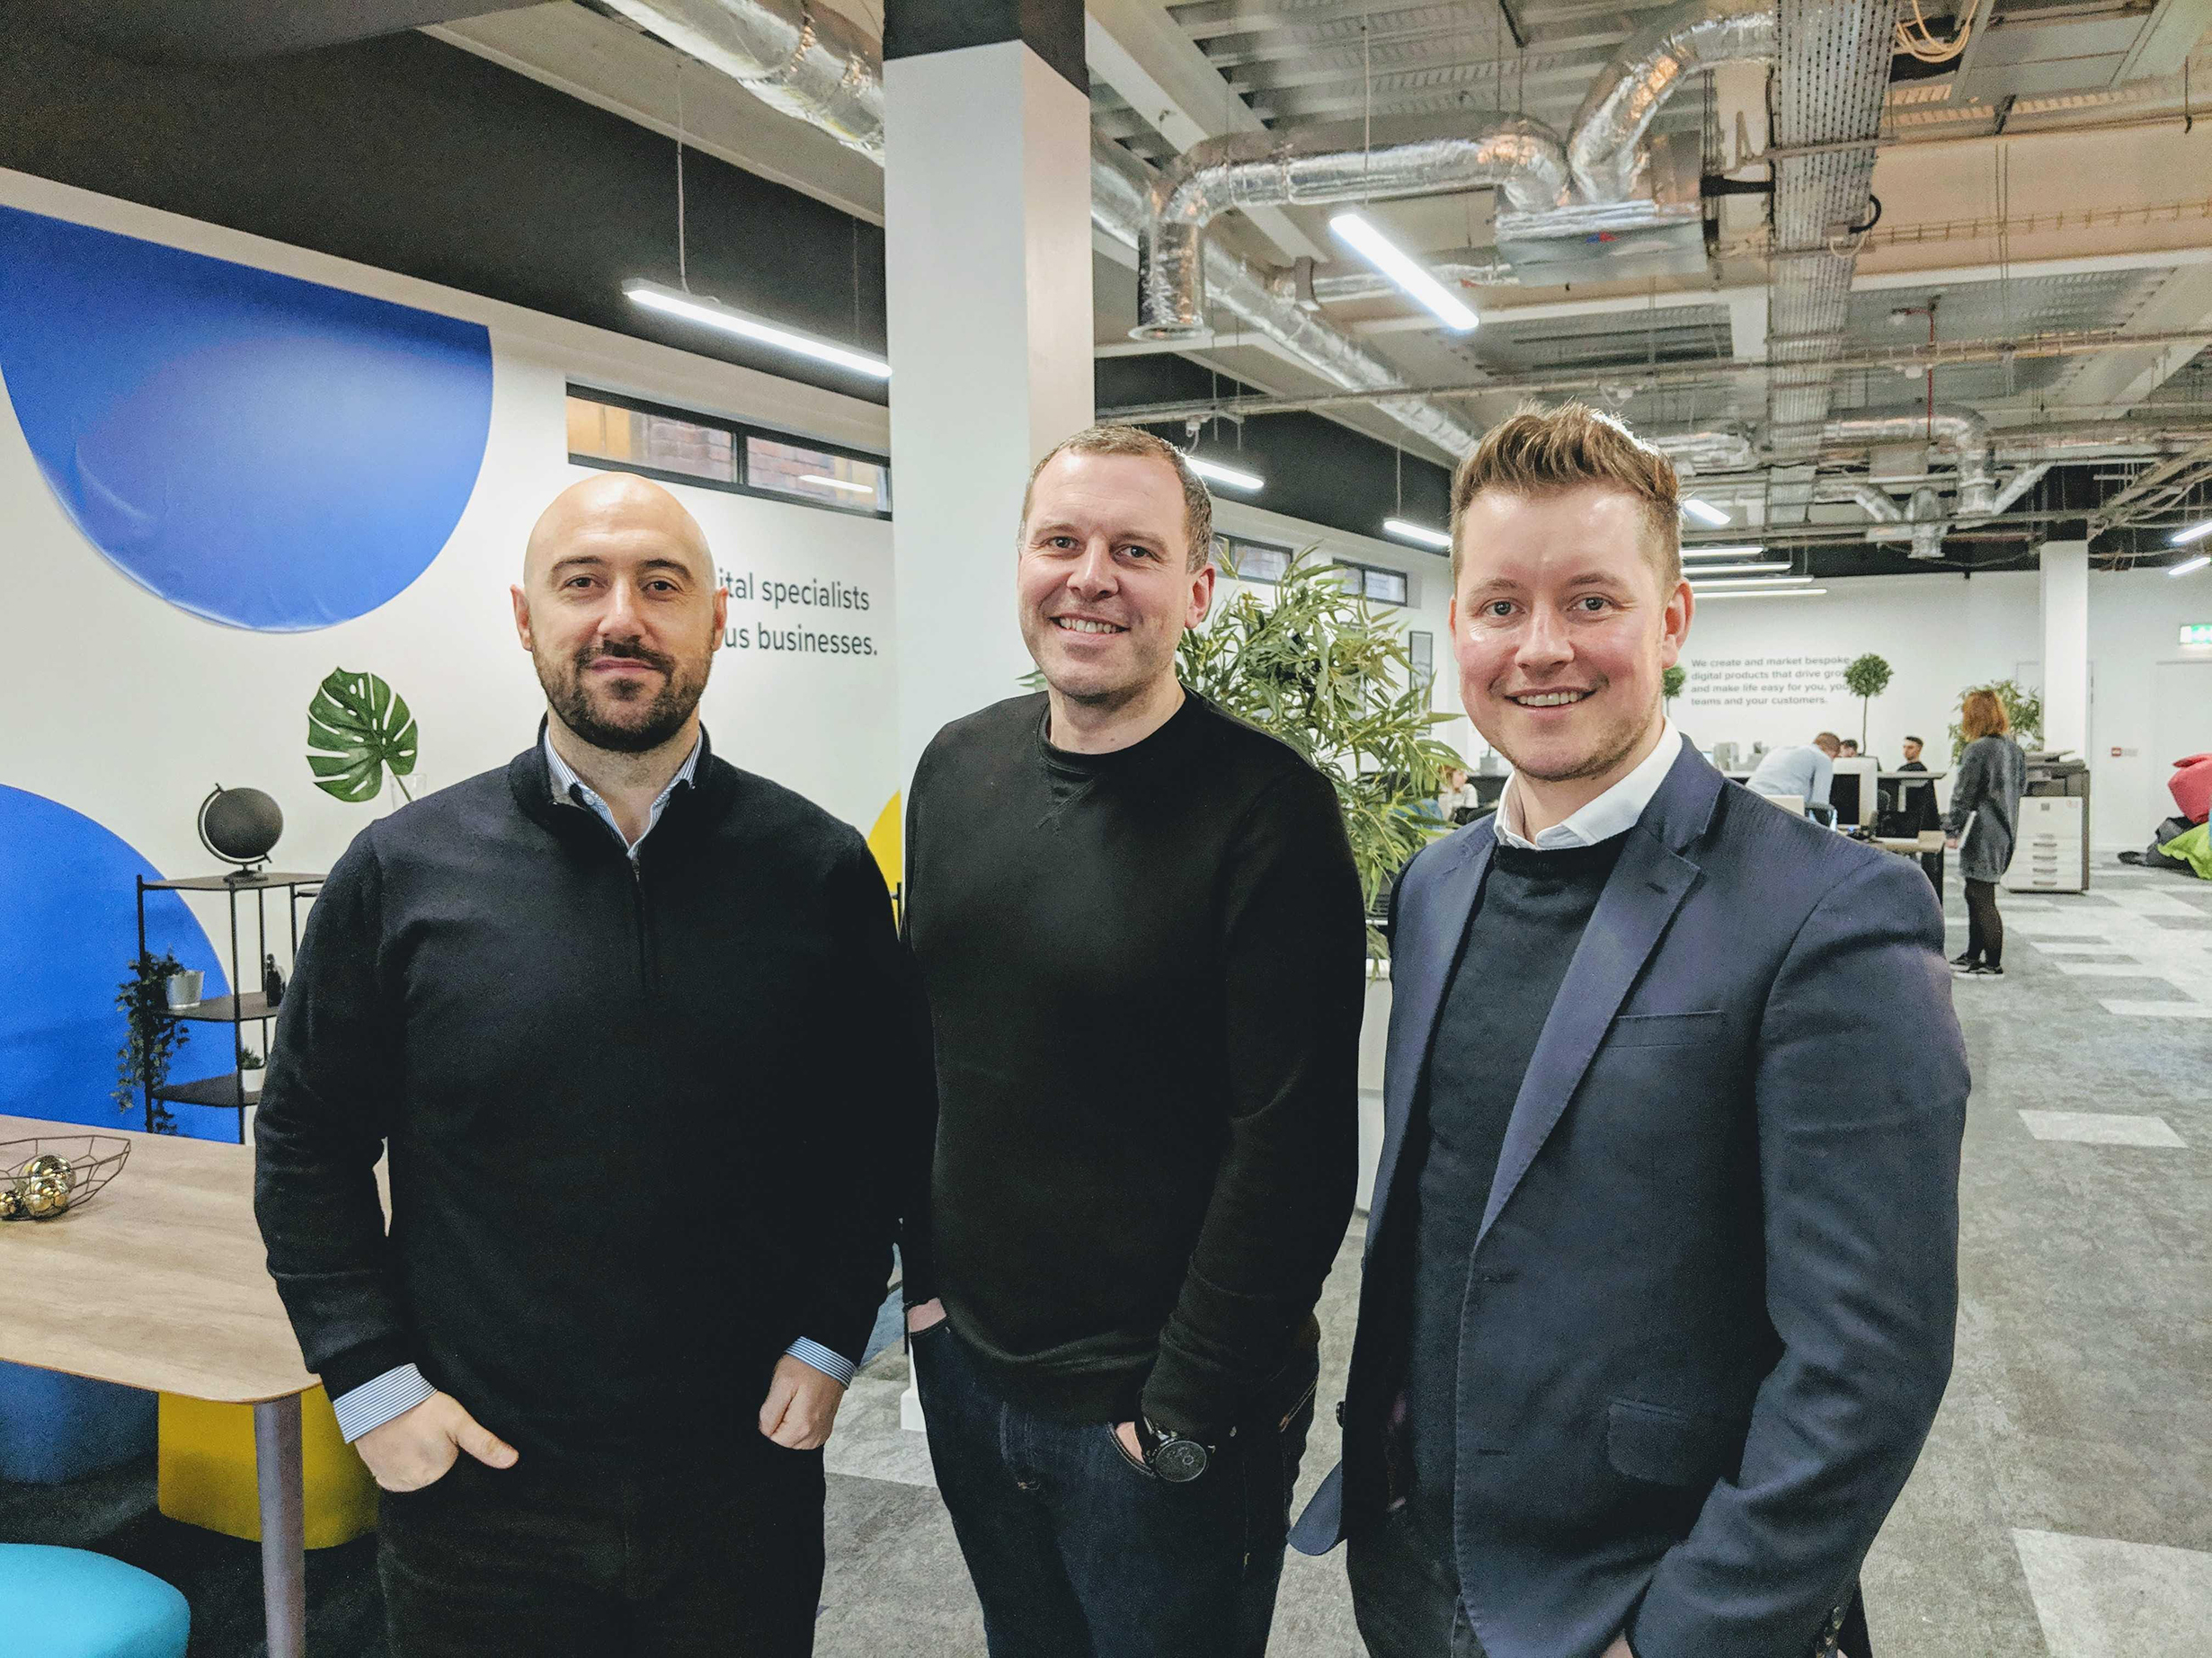 2019-04/1554303122_pj-ellis-anthony-bisseker-and-rob-pollard-of-lightbox-at-the-company-s-new-office